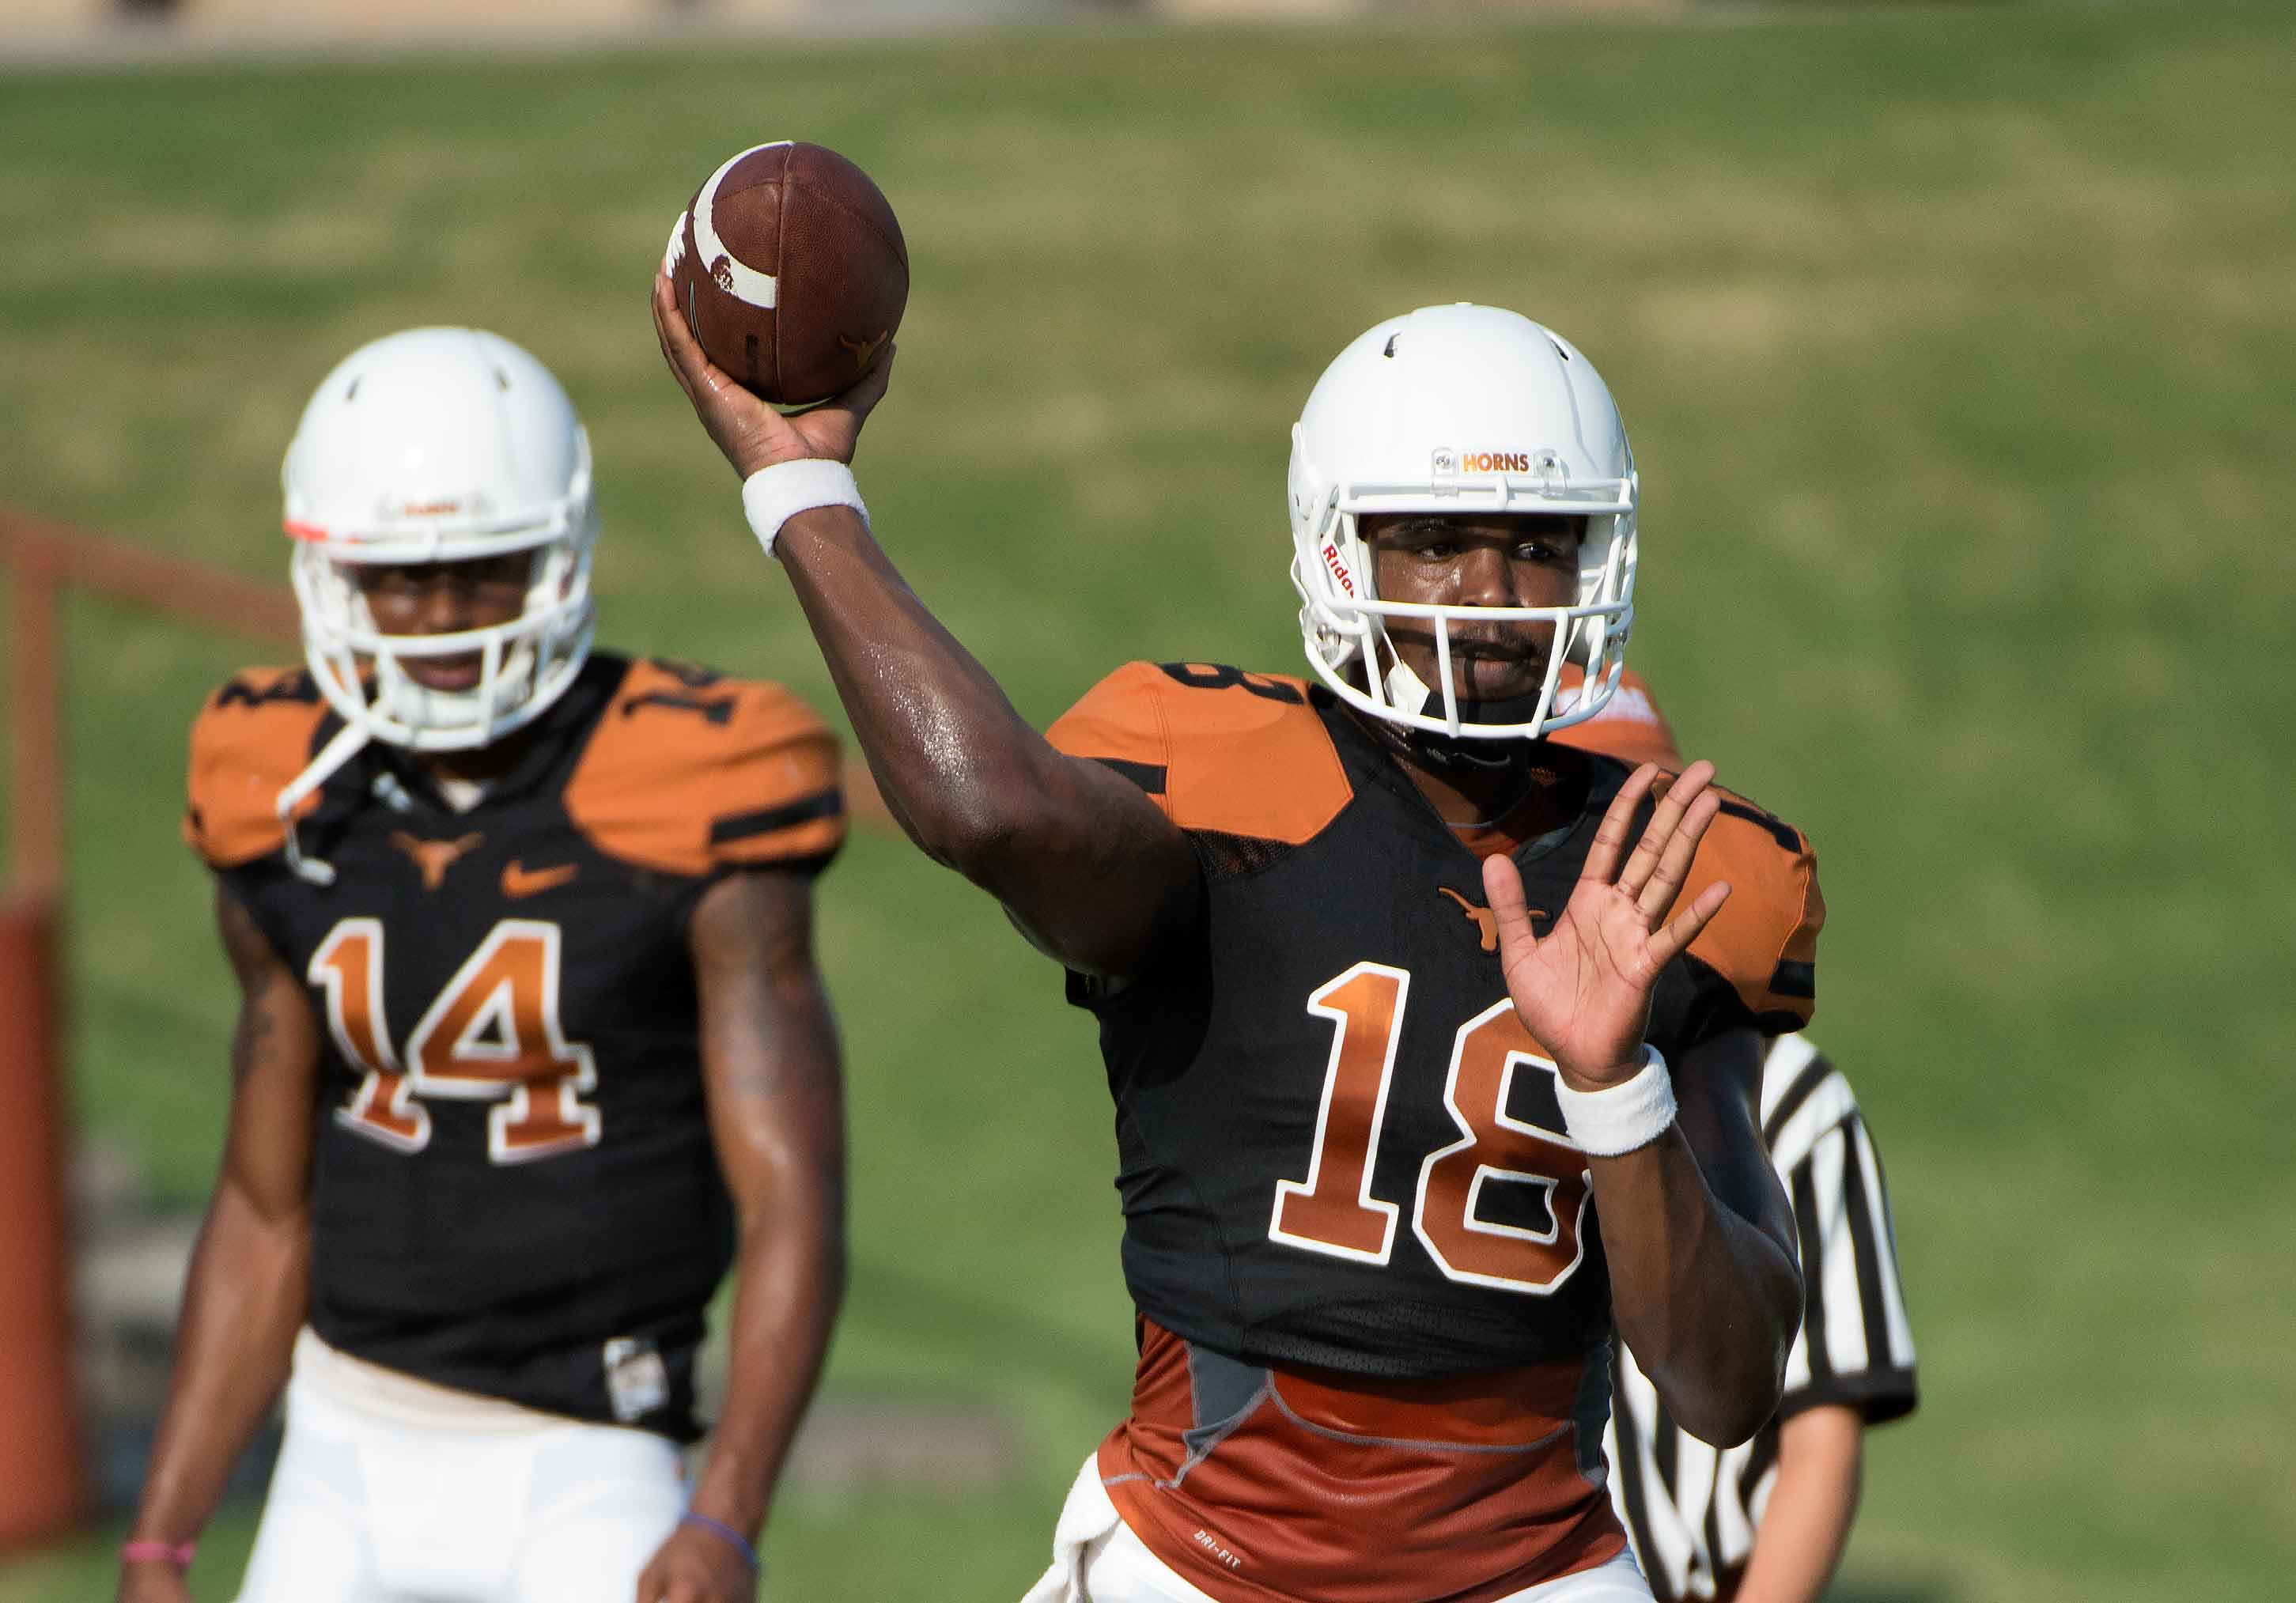 Tyrone Swoopes. Coach Strong. Texas football at practice on Aug 11, 2015 (photo: Jesse Drohen)